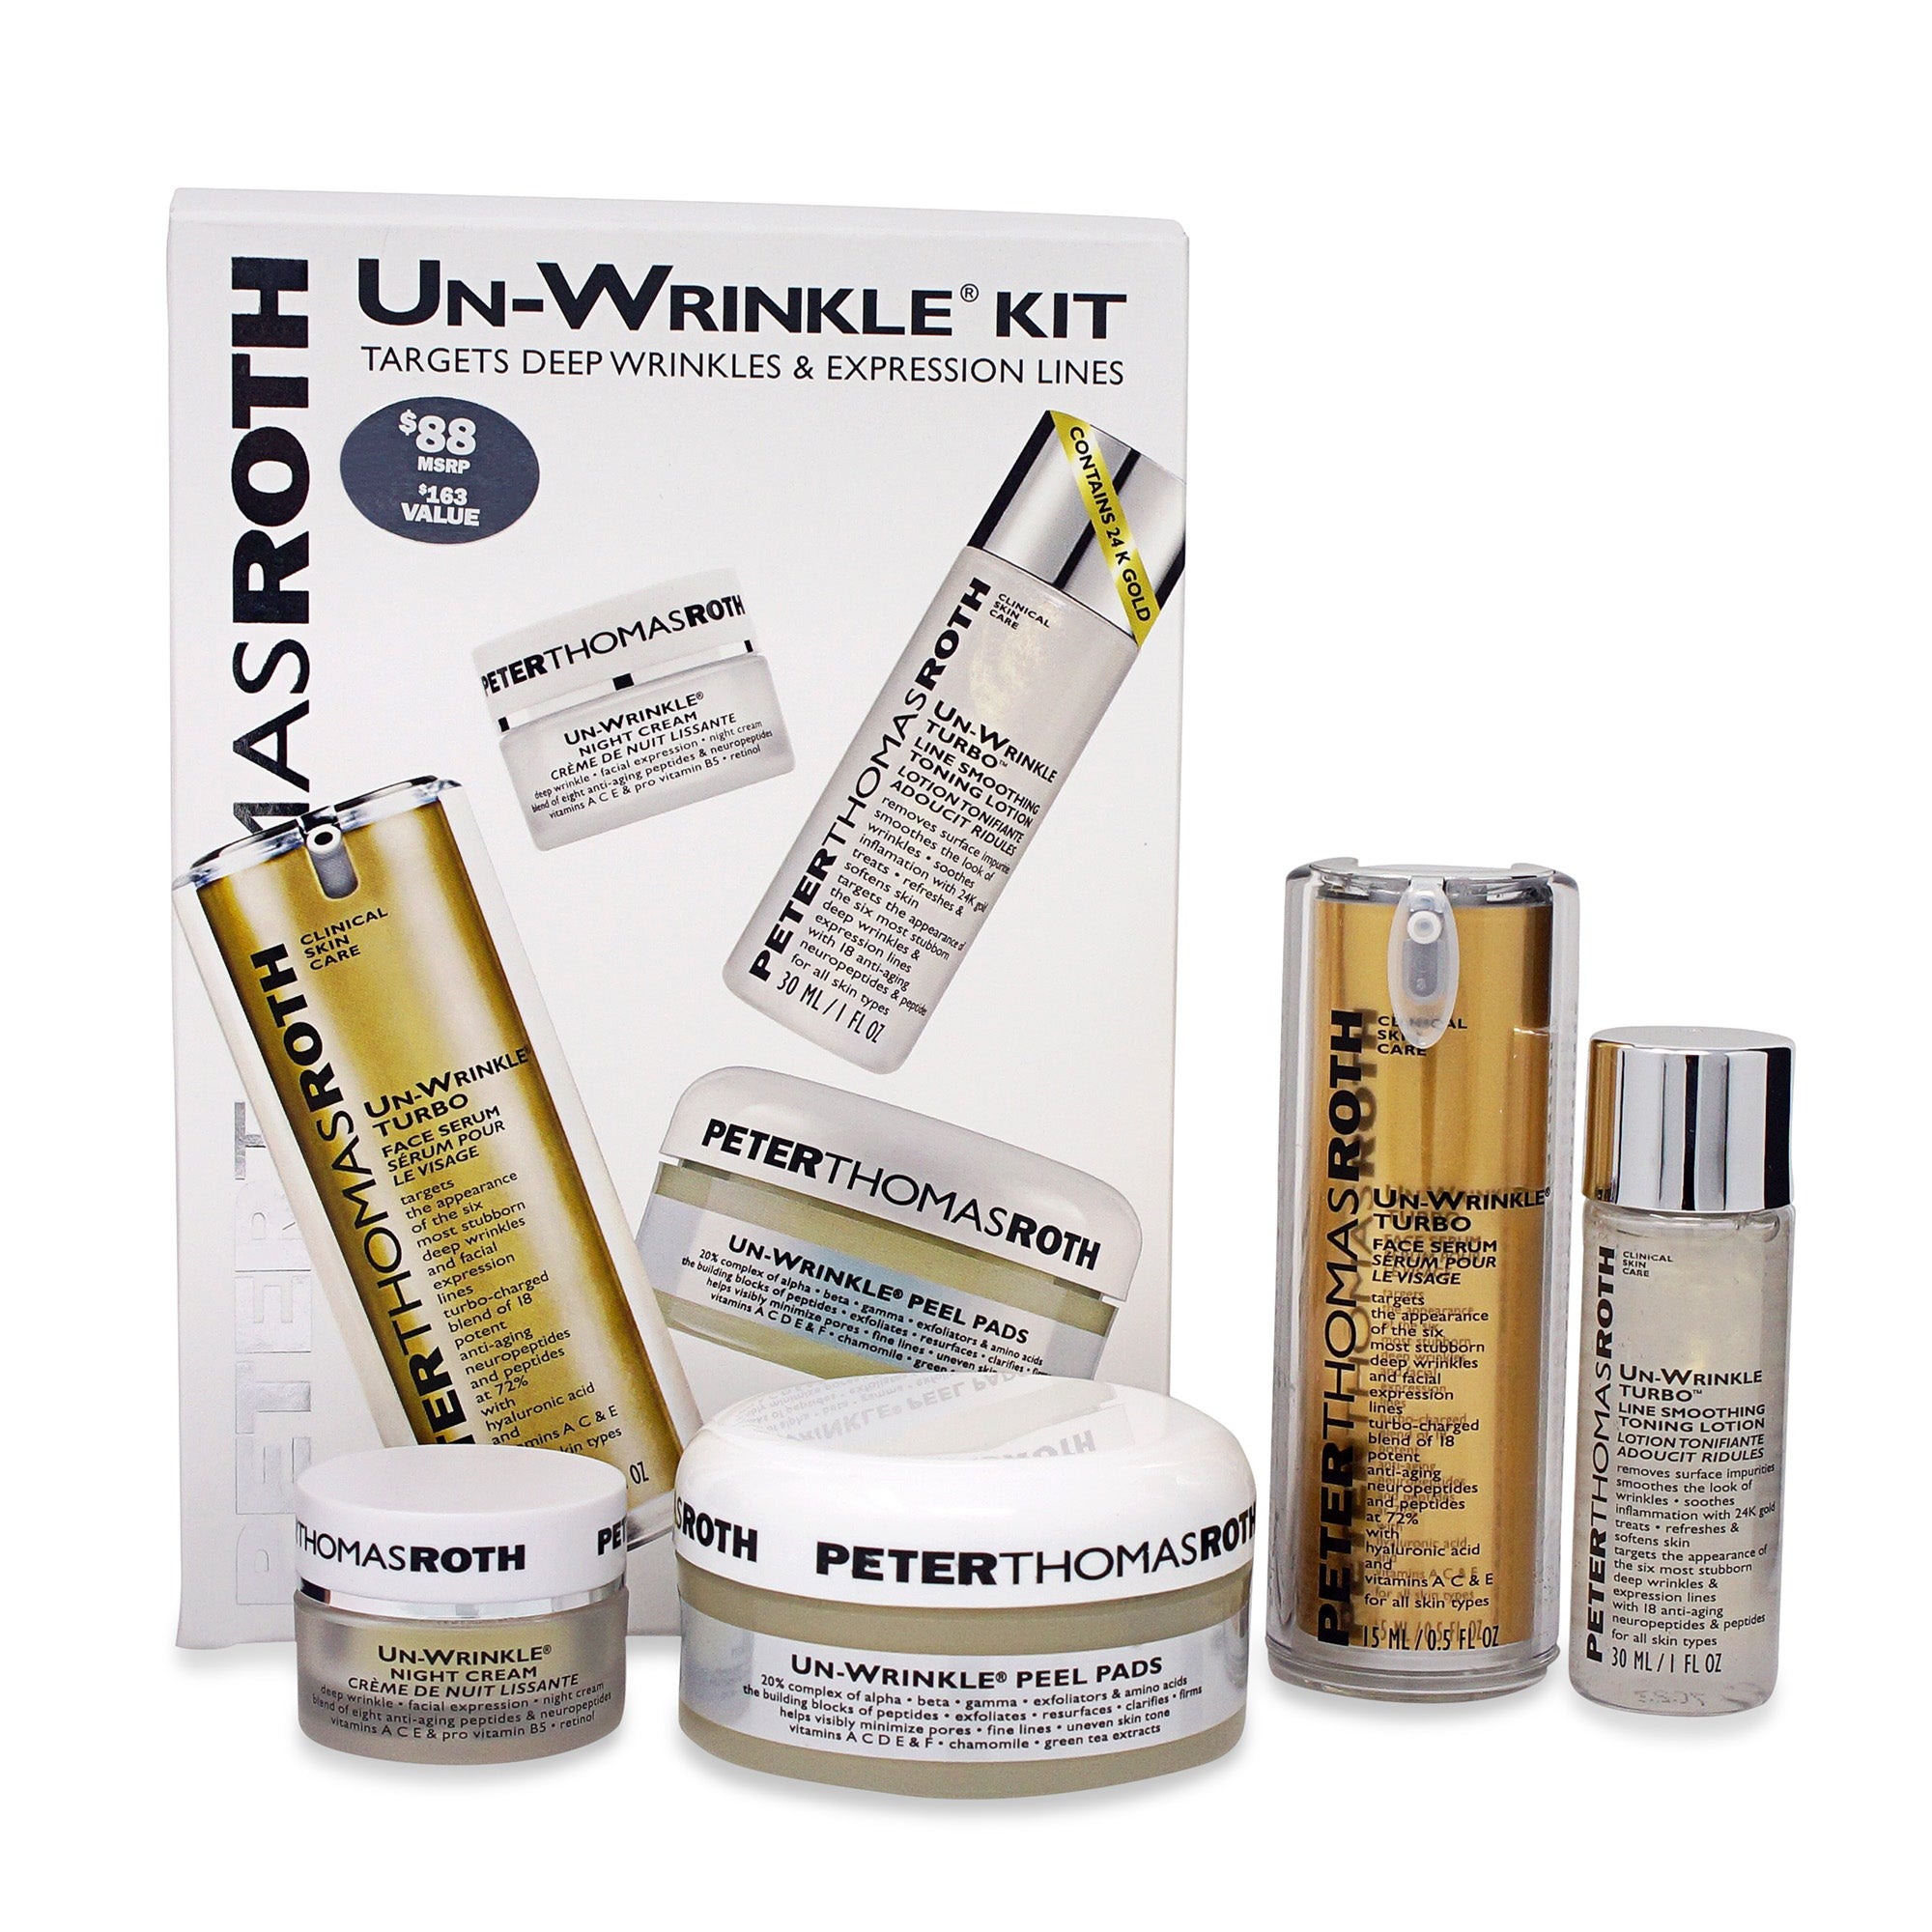 PETER THOMAS ROTH ~ UN-WRINKLE KIT (4 PRODUCTS)